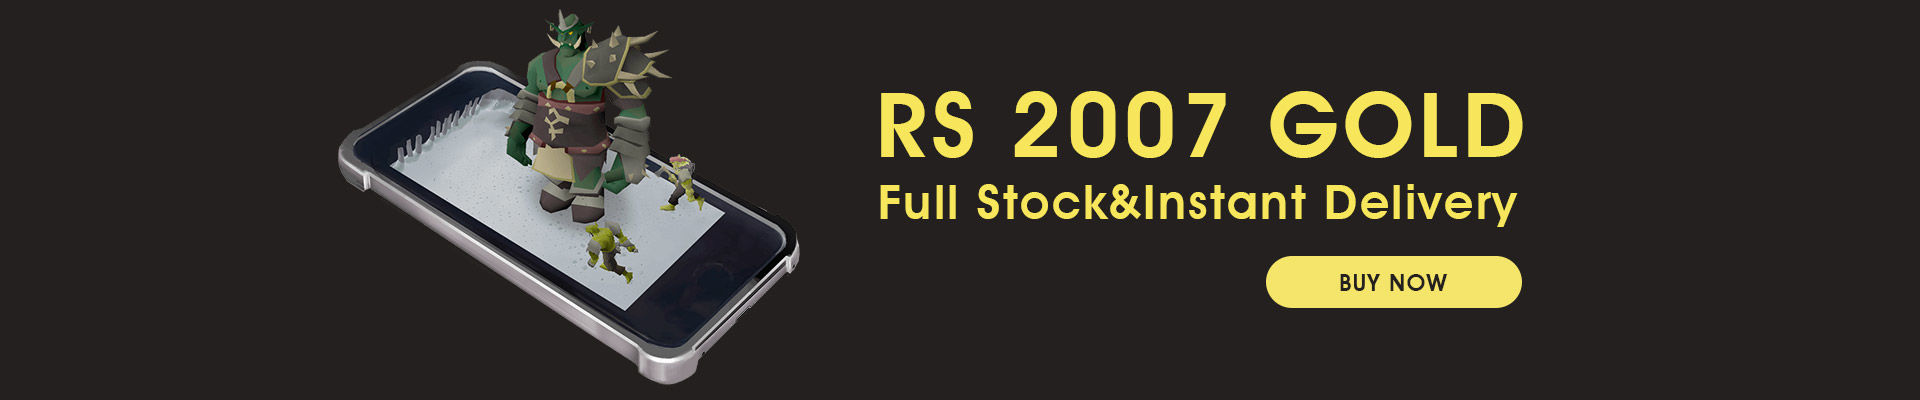 RS 2007 Gold Full Stock & Instant Delivery